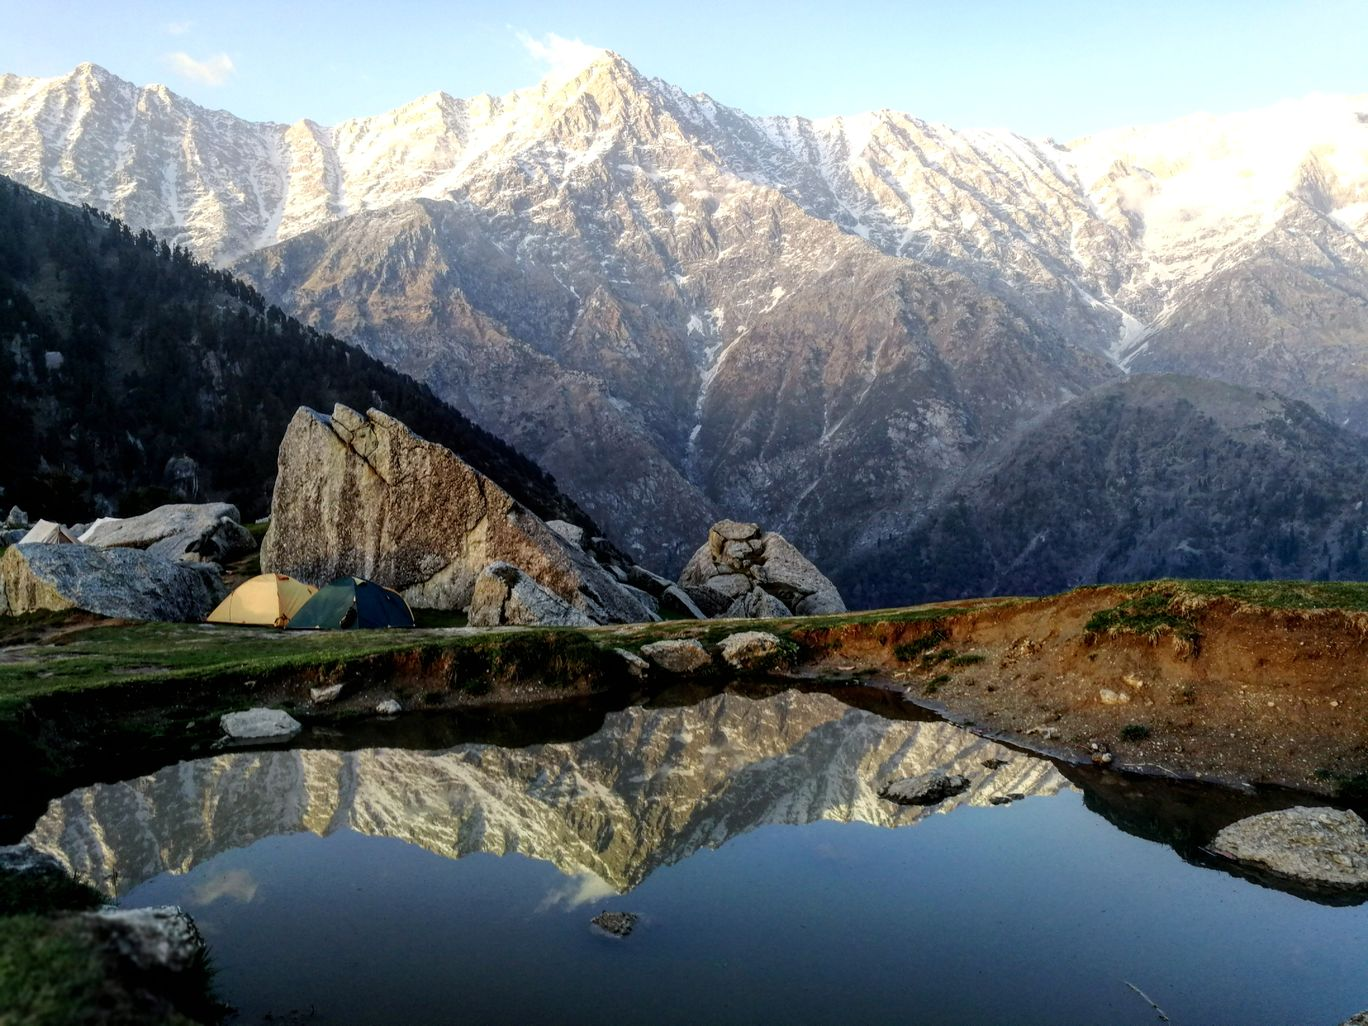 Photo of Triund By Nikhil Khanduja